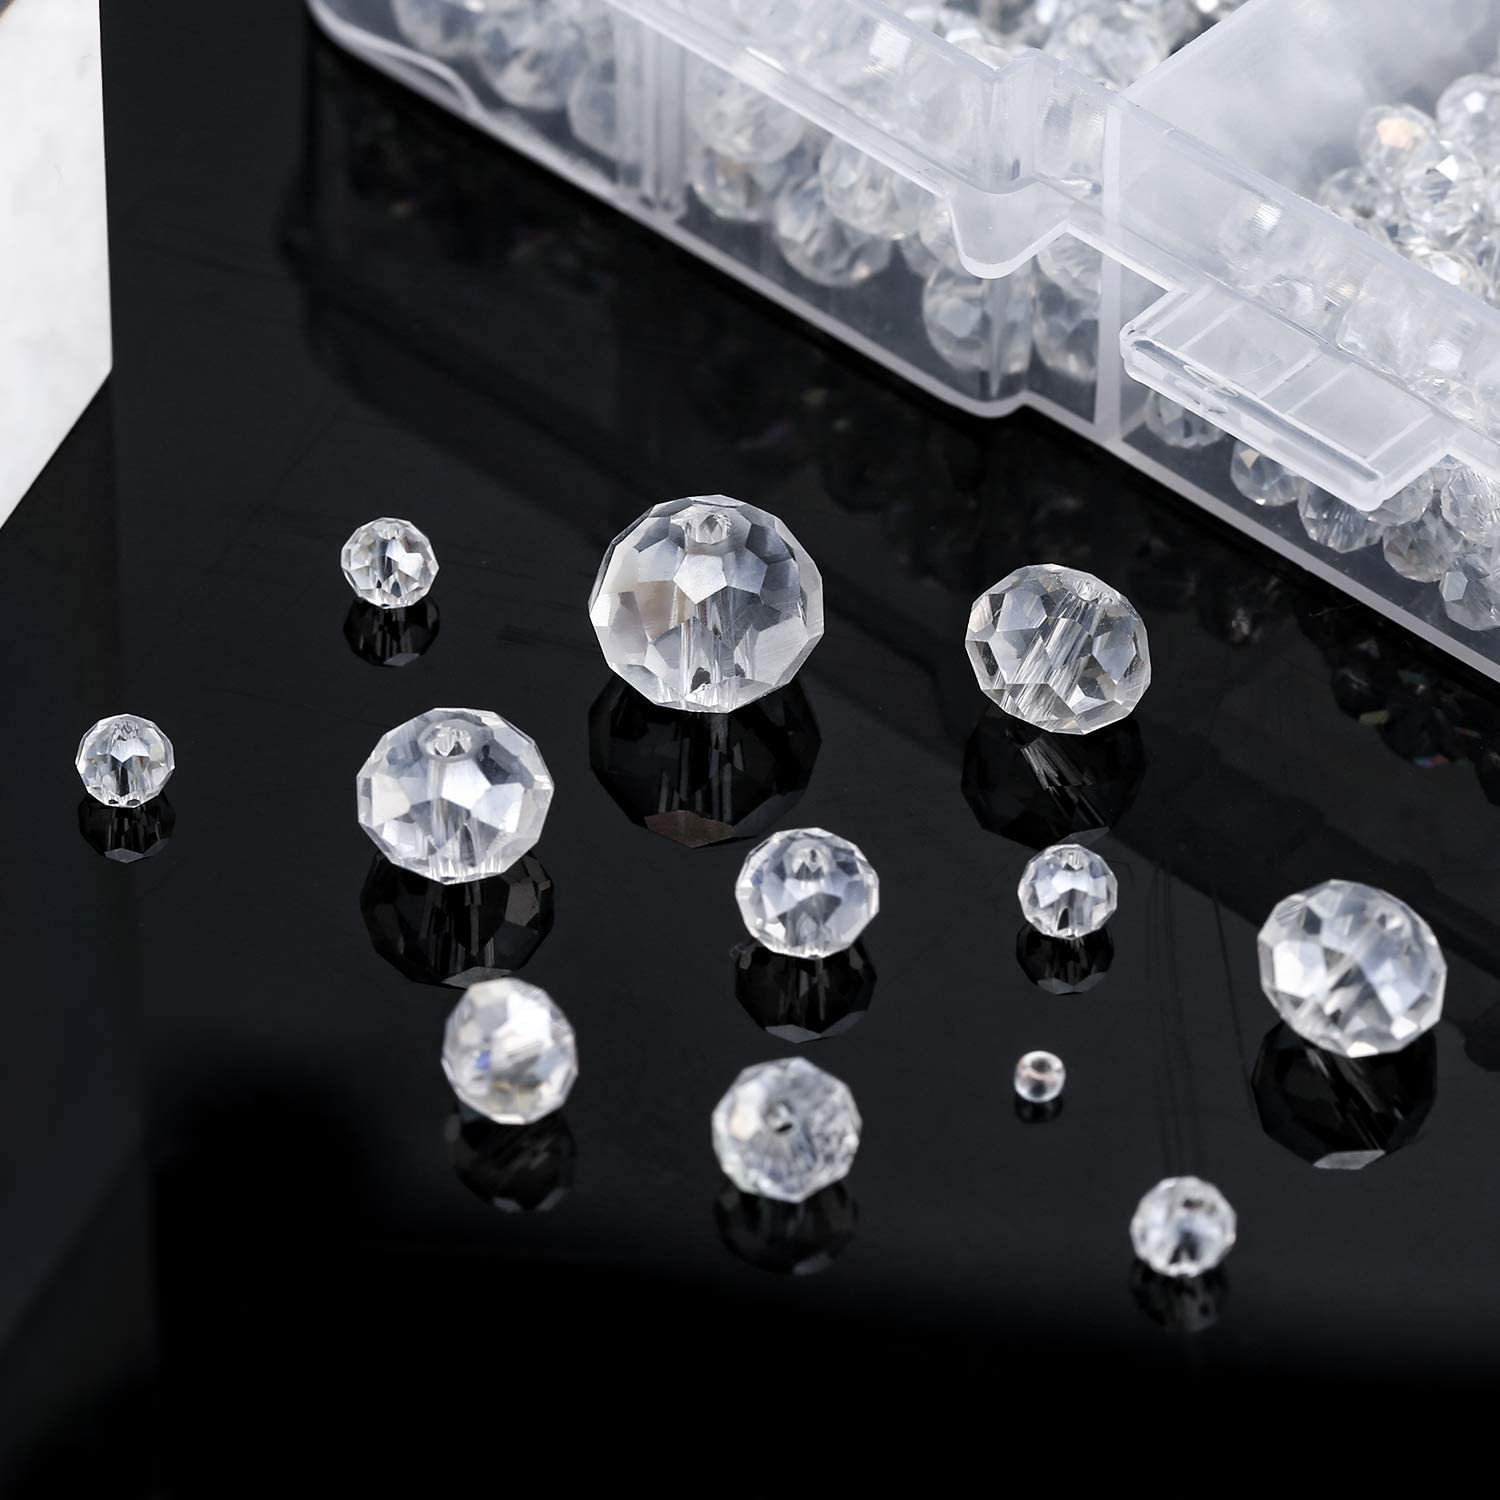 2-10mm// 0.07-0.40inch TOYMIS 900+pcs Crystal Beads Kit with Plastic Storage Box Full AB Coated Glass Beads Rondelle Crystal Beads Clear Crystal Beads Assorted Supplies for Jewelry Making